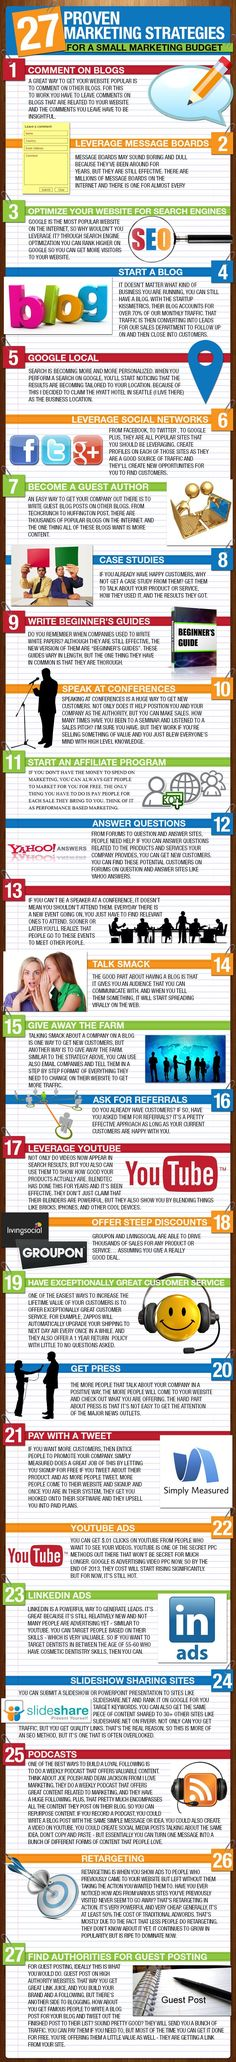 27 Proven Best Marketing Strategies For A Tiny Budget. This is why I love social marketing for small business - so many of these tips rely on having on online presence. This infographic explains all the social media and beyond. Social Marketing, Budget Marketing, Inbound Marketing, Mundo Marketing, Marketing Trends, Marketing Online, Small Business Marketing, Marketing Tools, Marketing And Advertising